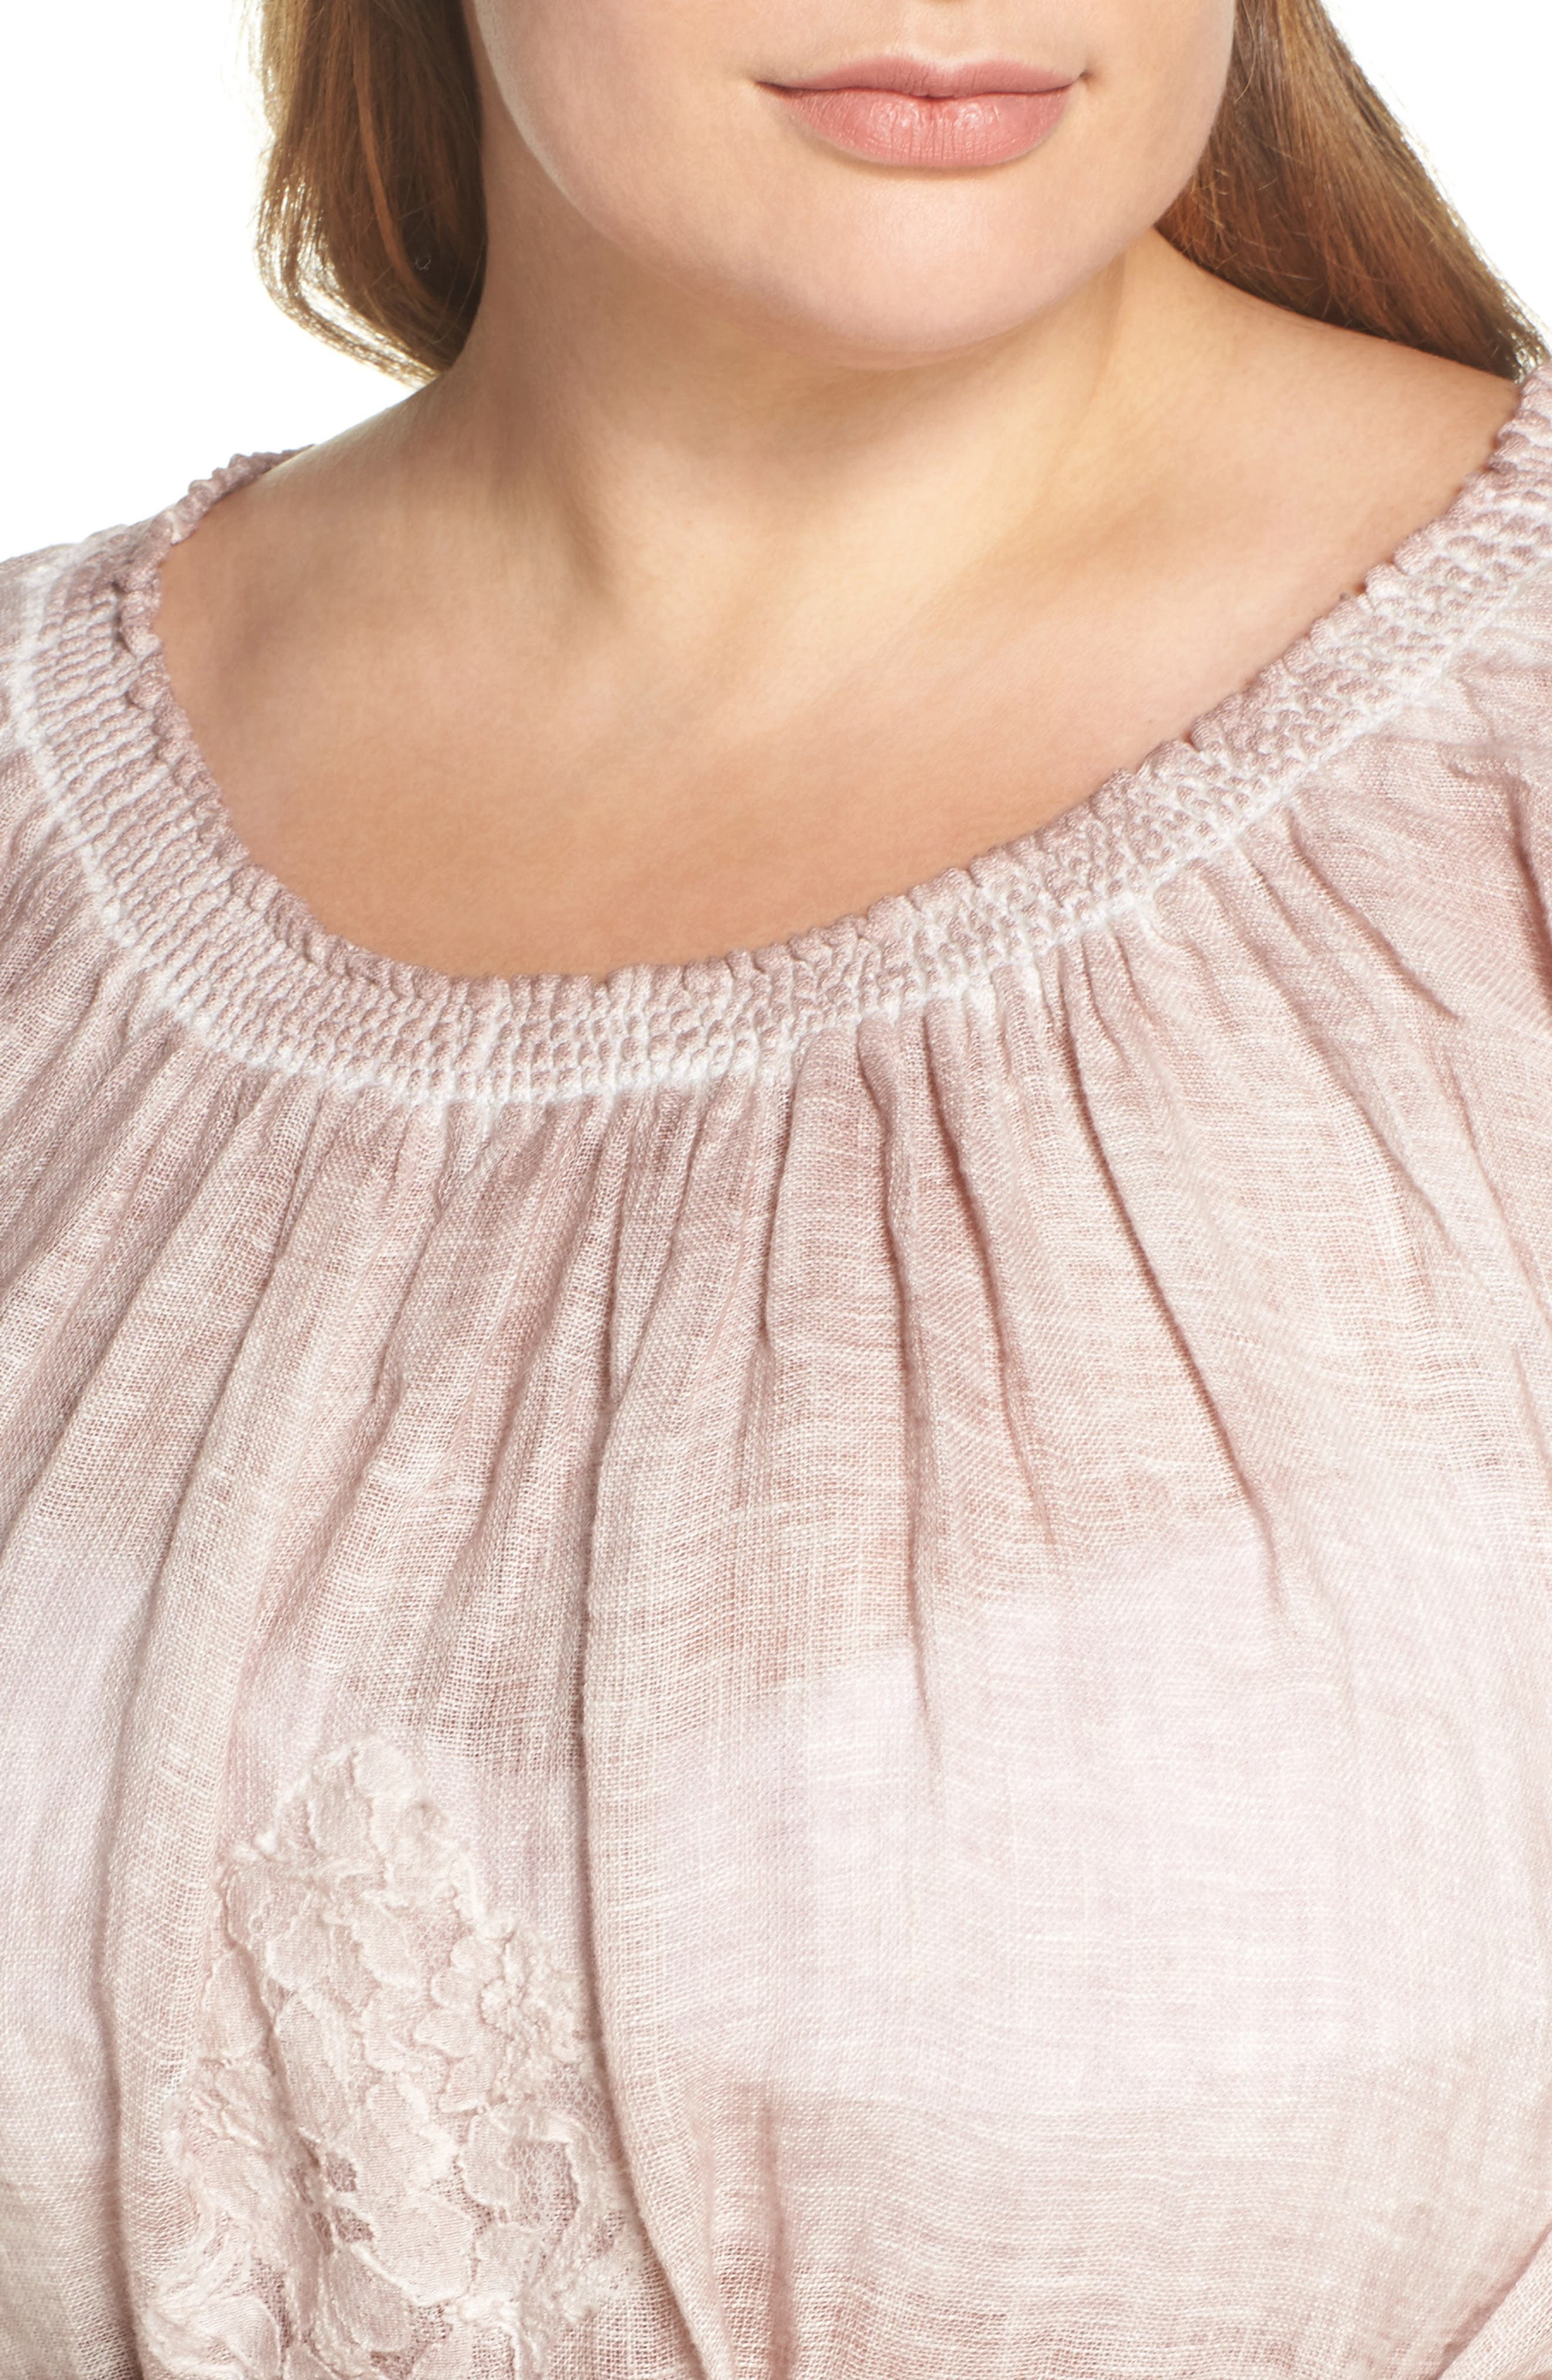 Daisy Linen Cover-Up Dress,                             Alternate thumbnail 4, color,                             Dusty Pink